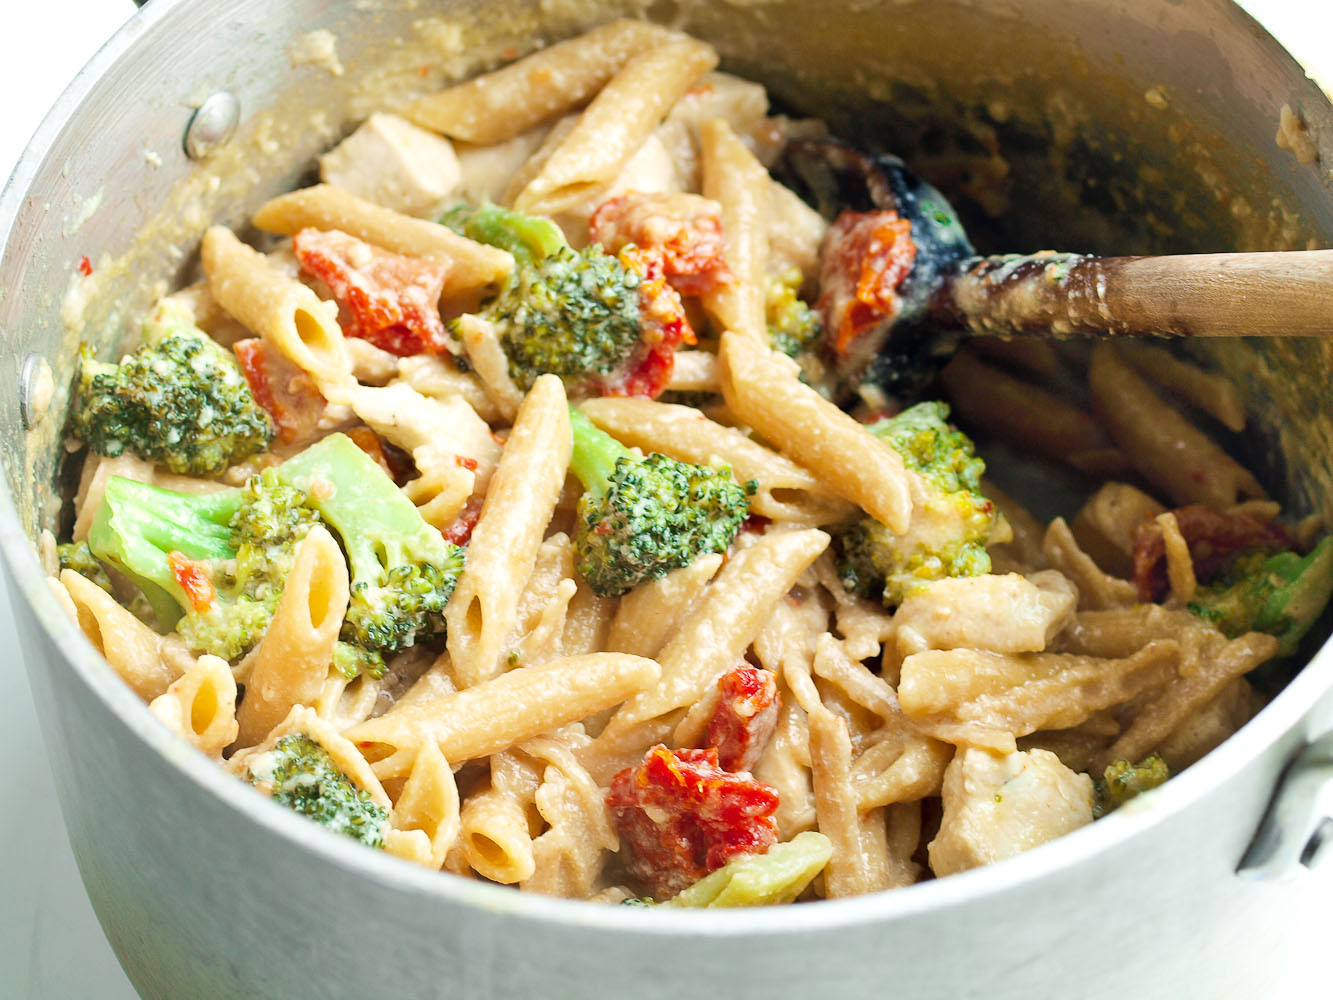 Healthy Dinner Ideas For Kids  Tangy e Pot Chicken and Veggie Pasta Dinner